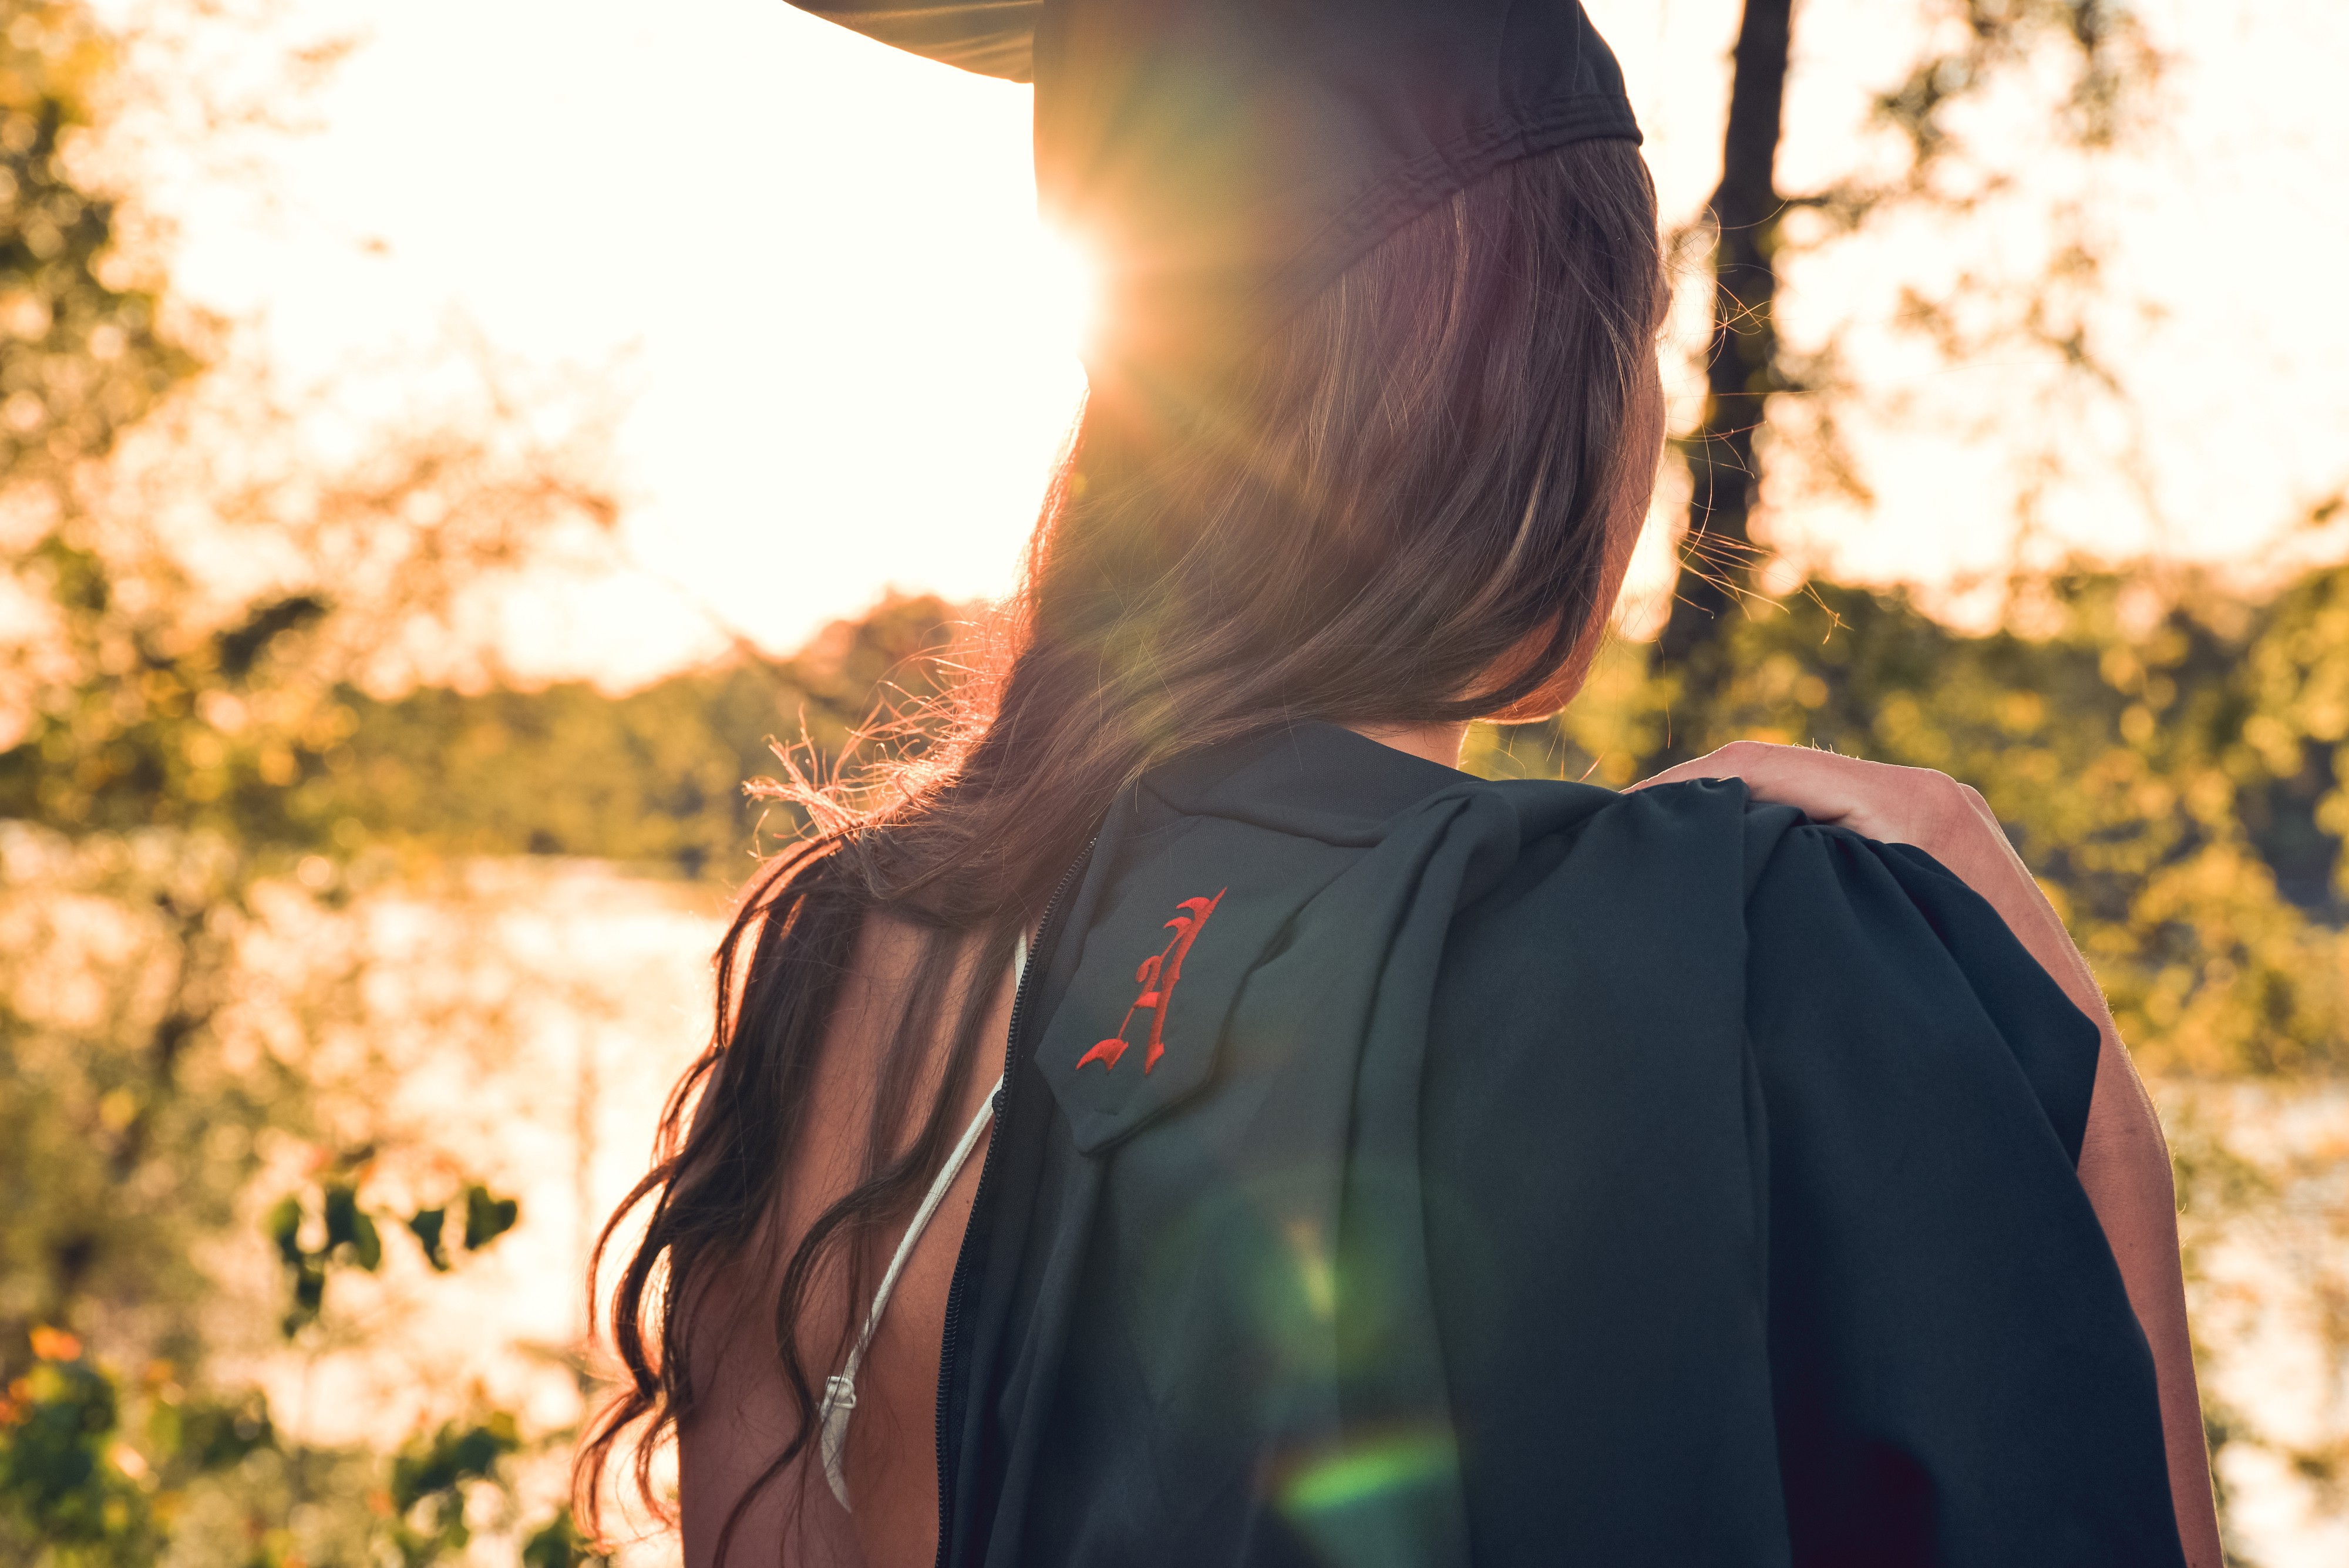 Female with long brown wavy hair outdoors in academic dress and cap.